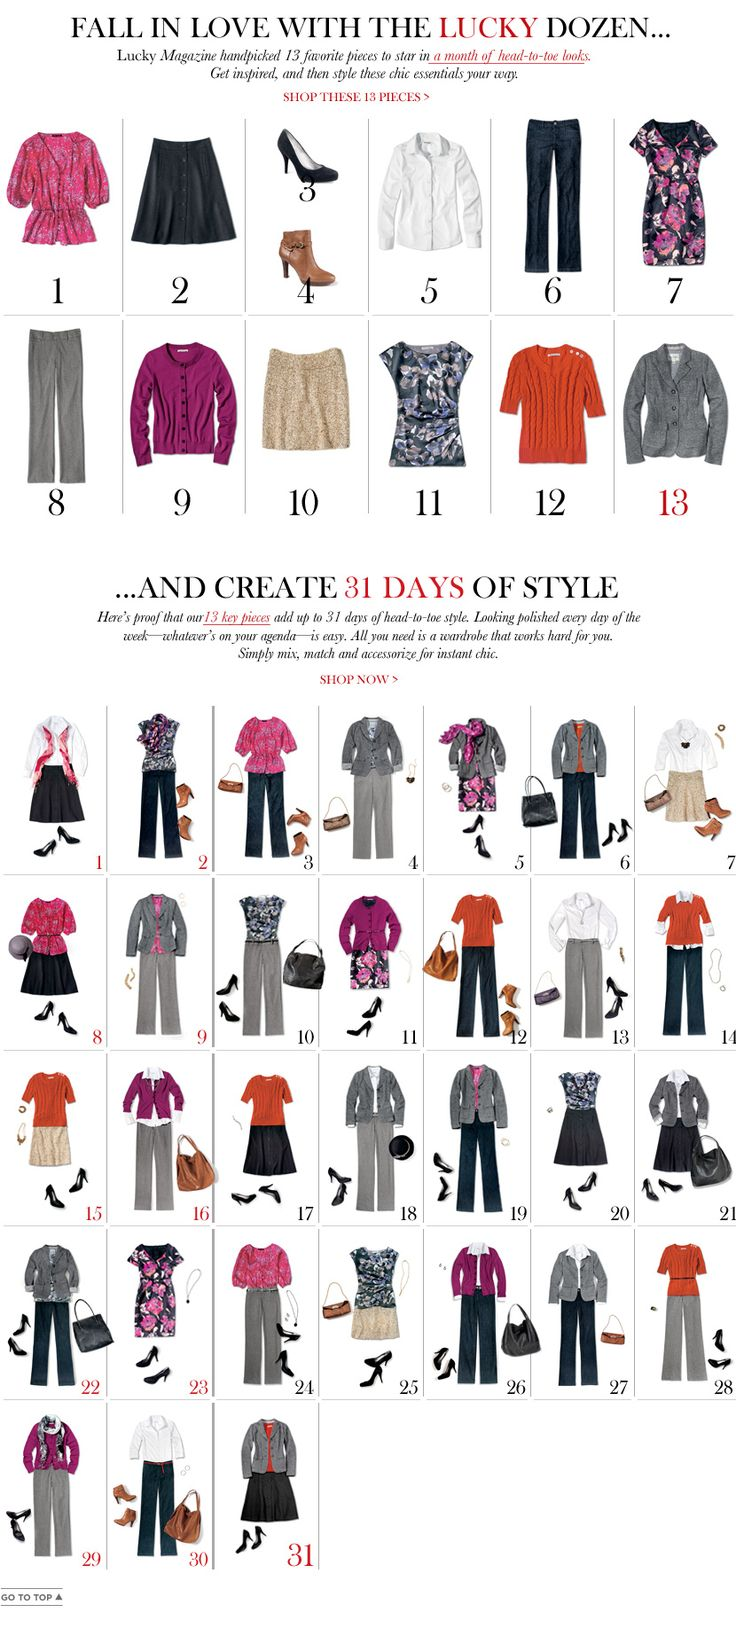 Wardrobe ideas - 30 outfits from 13 pieces.13 Piece, Fashion, Outfit Ideas, 31 Outfit, Capsule Wardrobe, Clothing, Work Outfit, Minimalist Wardrobe, Lucky Dozen